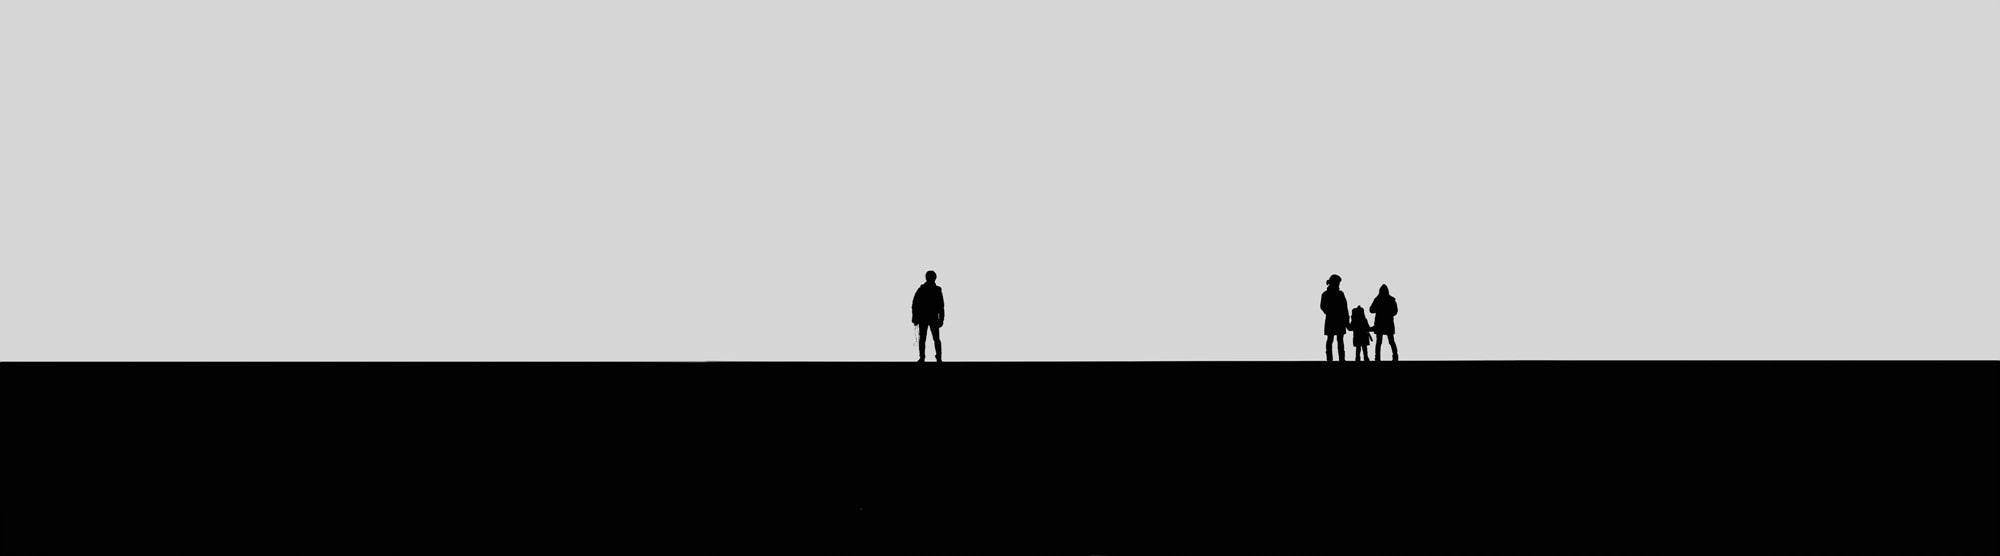 Photograph GUY. FAMILY. silhouette               by 300won on 500px